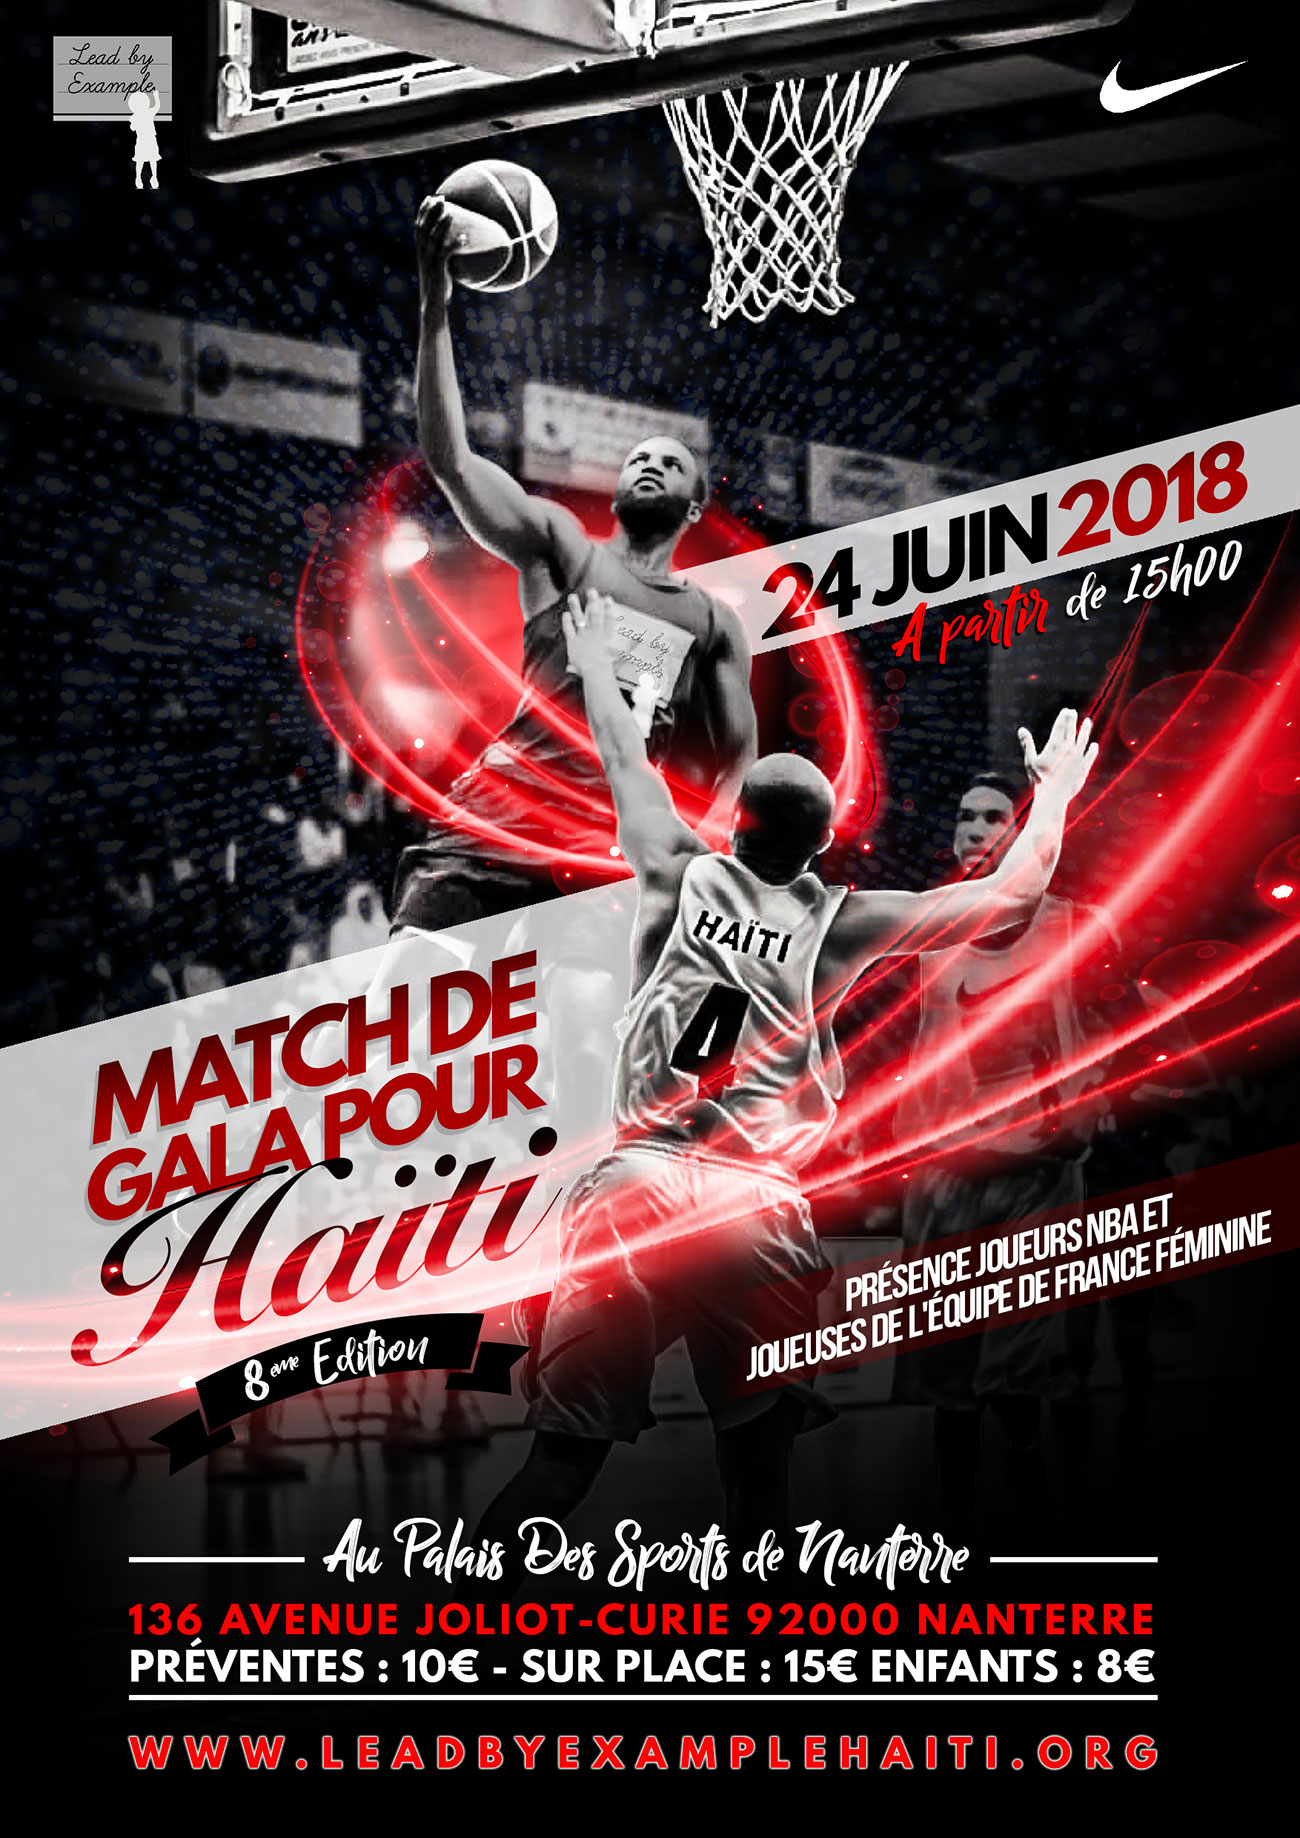 Match de gala Lead by example 2018